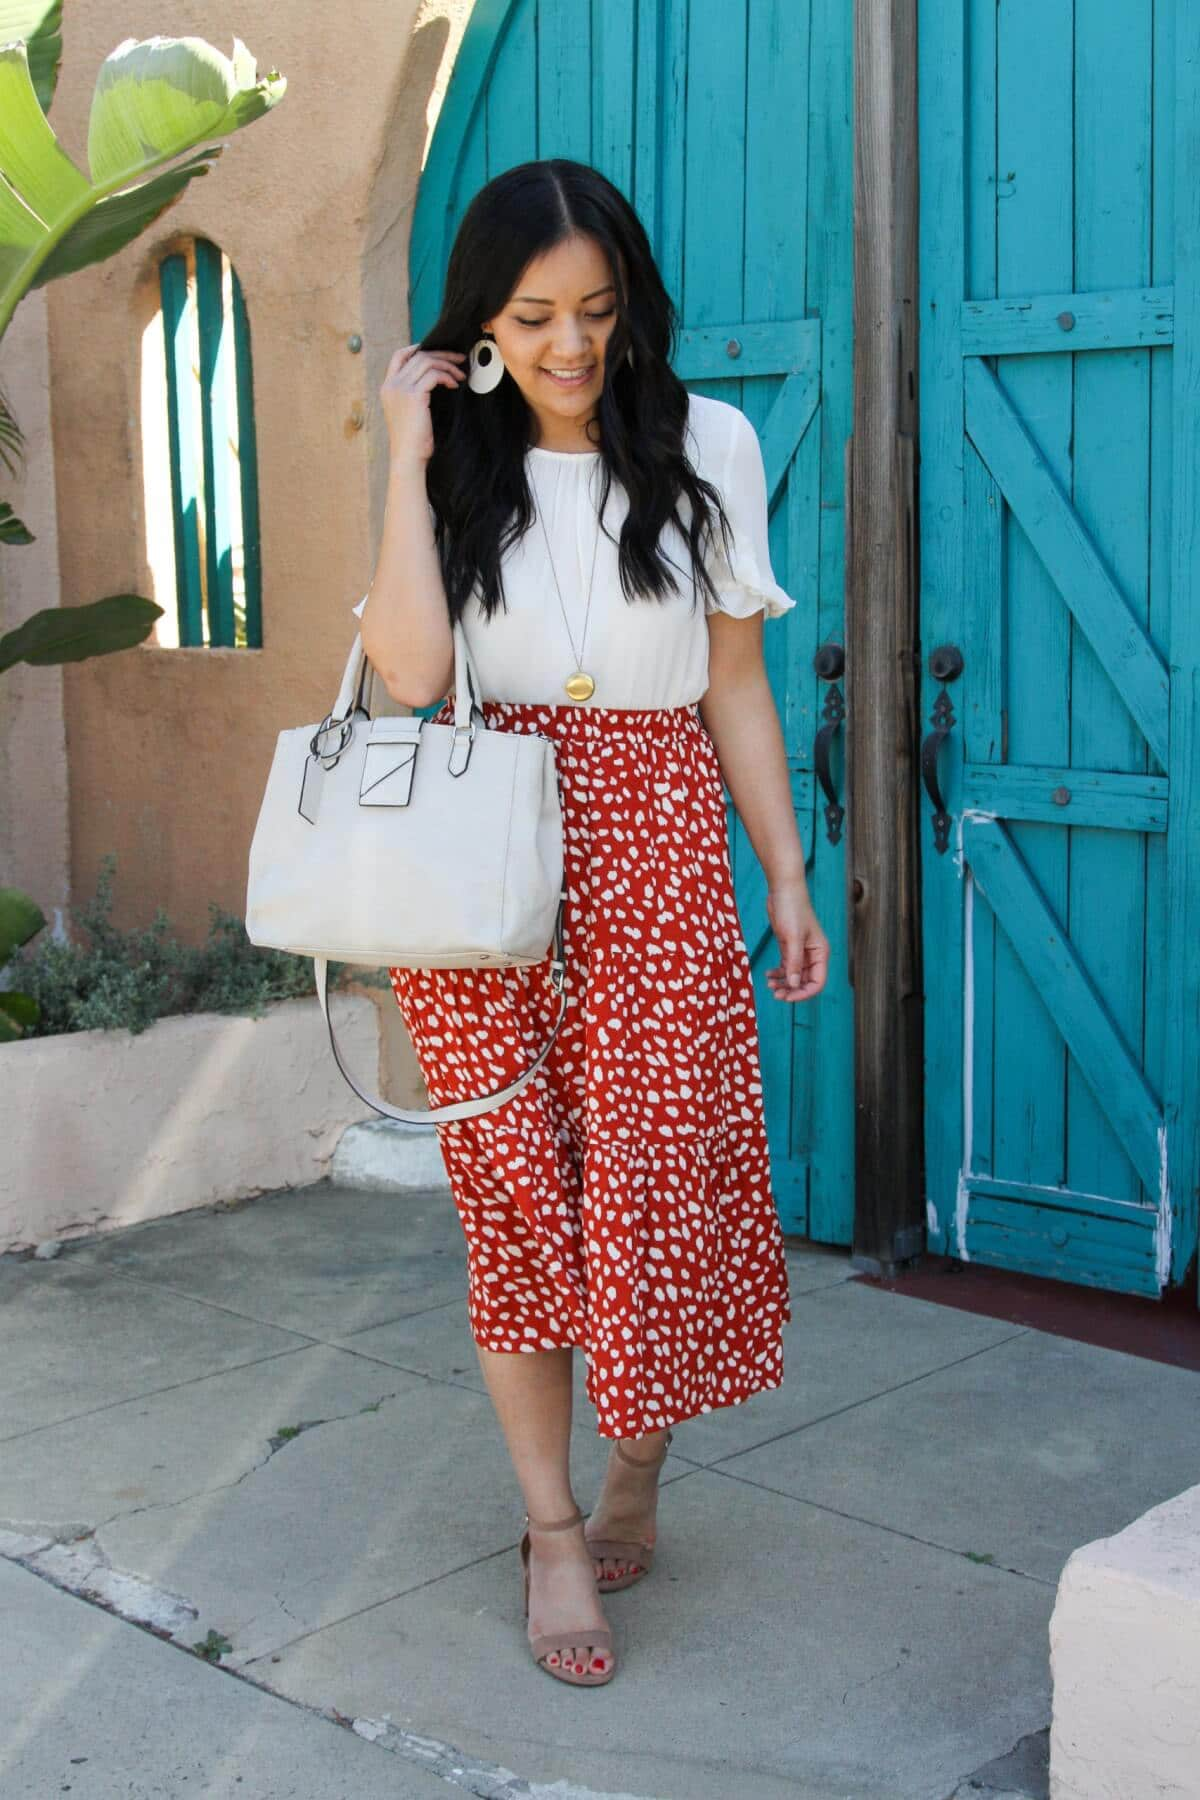 spring business casual outfit: white blouse + red printed skirt + nude sandals + pendant necklace + white bag